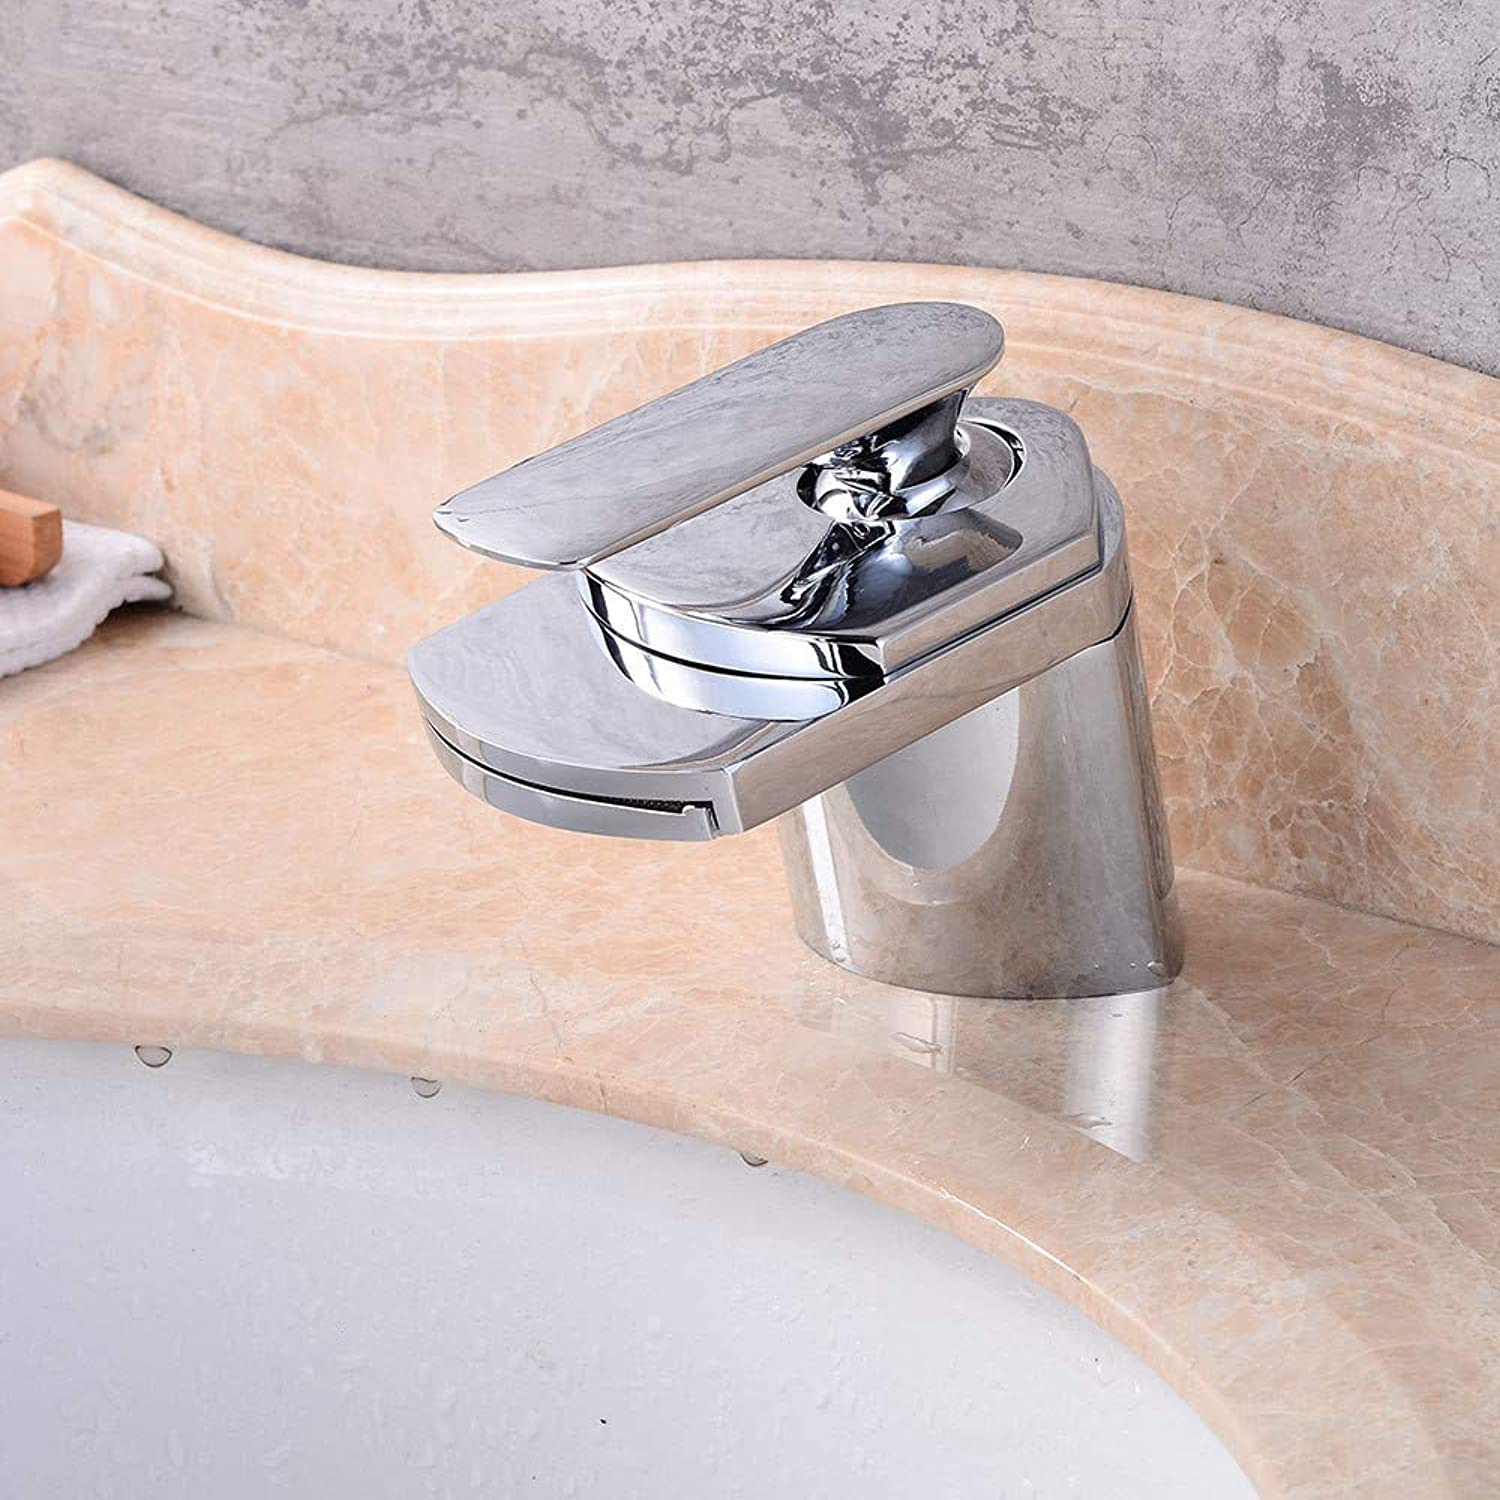 Kitchen & Bath Fixtures Taps Faucet,Wide Mouth Single Hole Copper Basin Waterfall Faucet Bathroom Wash Basin Waterfall Hot and Cold Water Faucet